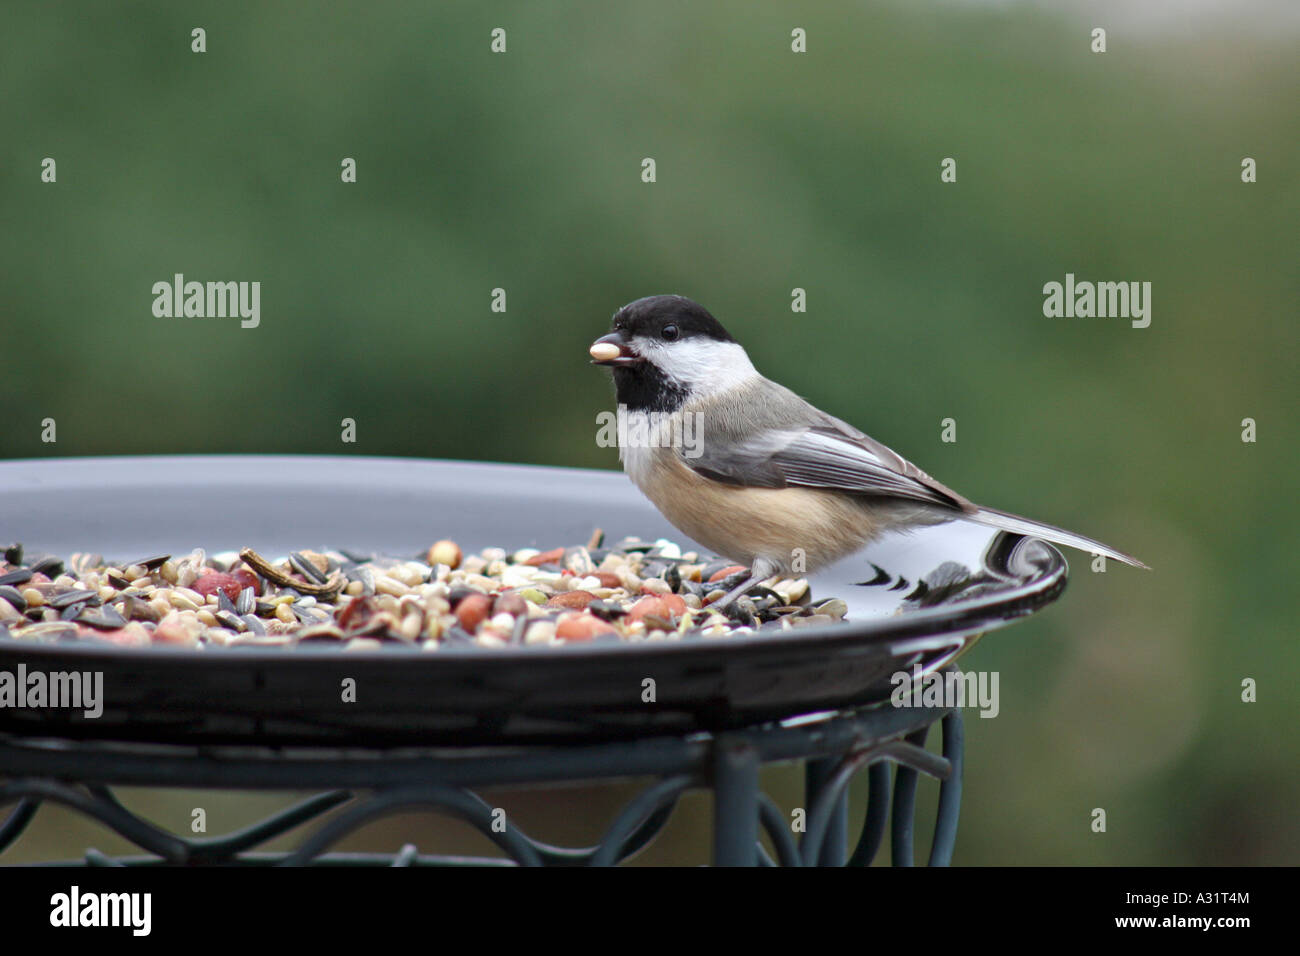 Black-capped Chickadee at feeding plate with seed in mouth in profile - Stock Image